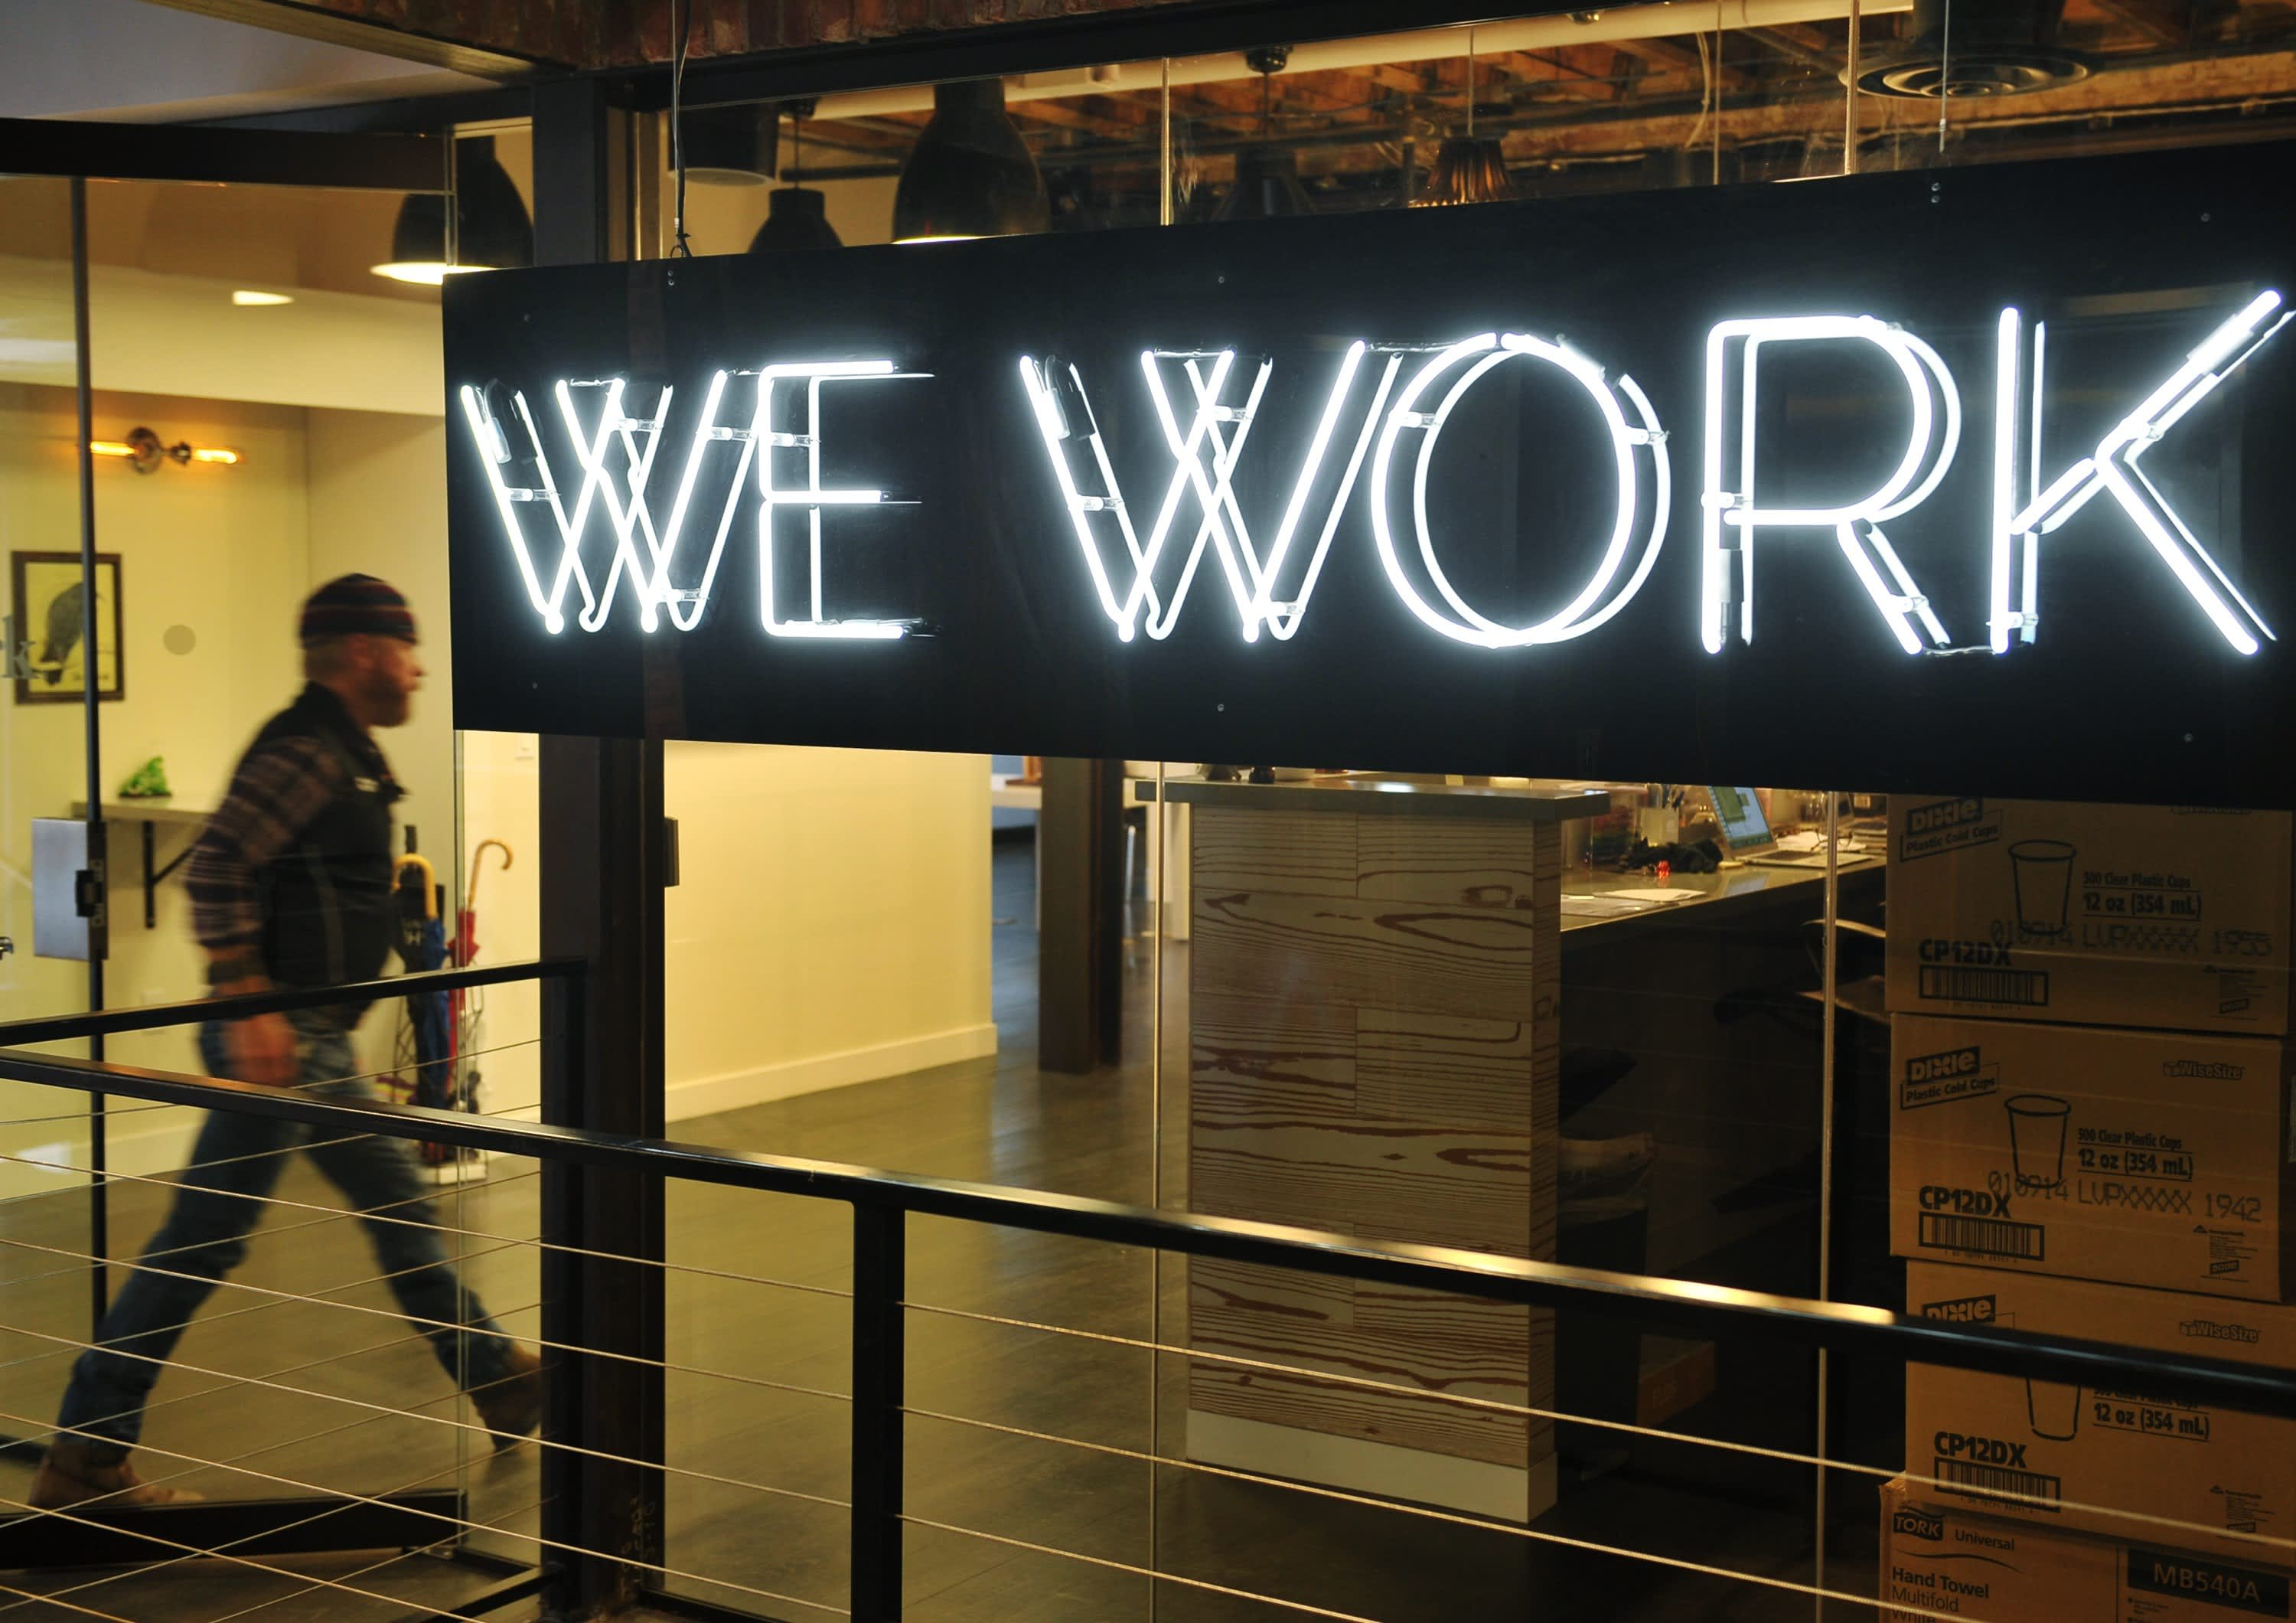 SoftBank takes 80% ownership of WeWork, announces $5 billion in new financing package